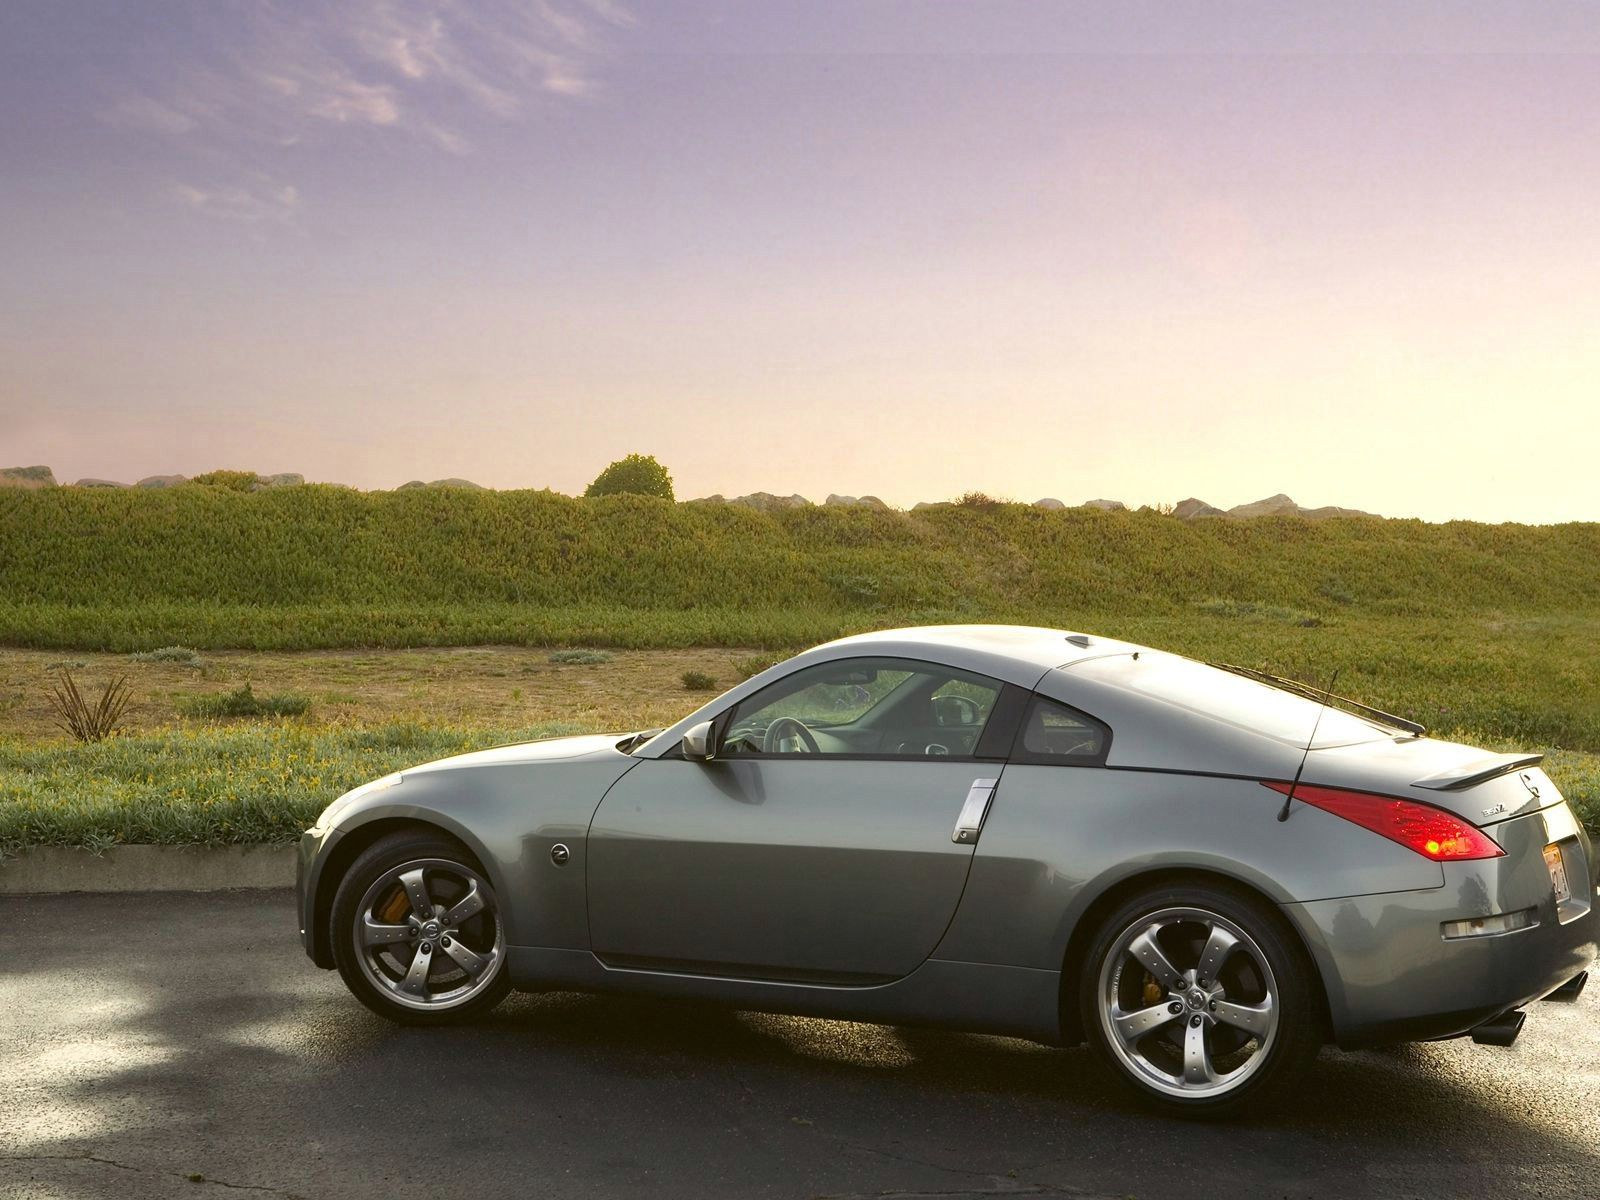 14 best nissan 350z for sale images on pinterest cars for sale nissan 350z performance coupe for sale visit our website for great prices on top of vanachro Choice Image